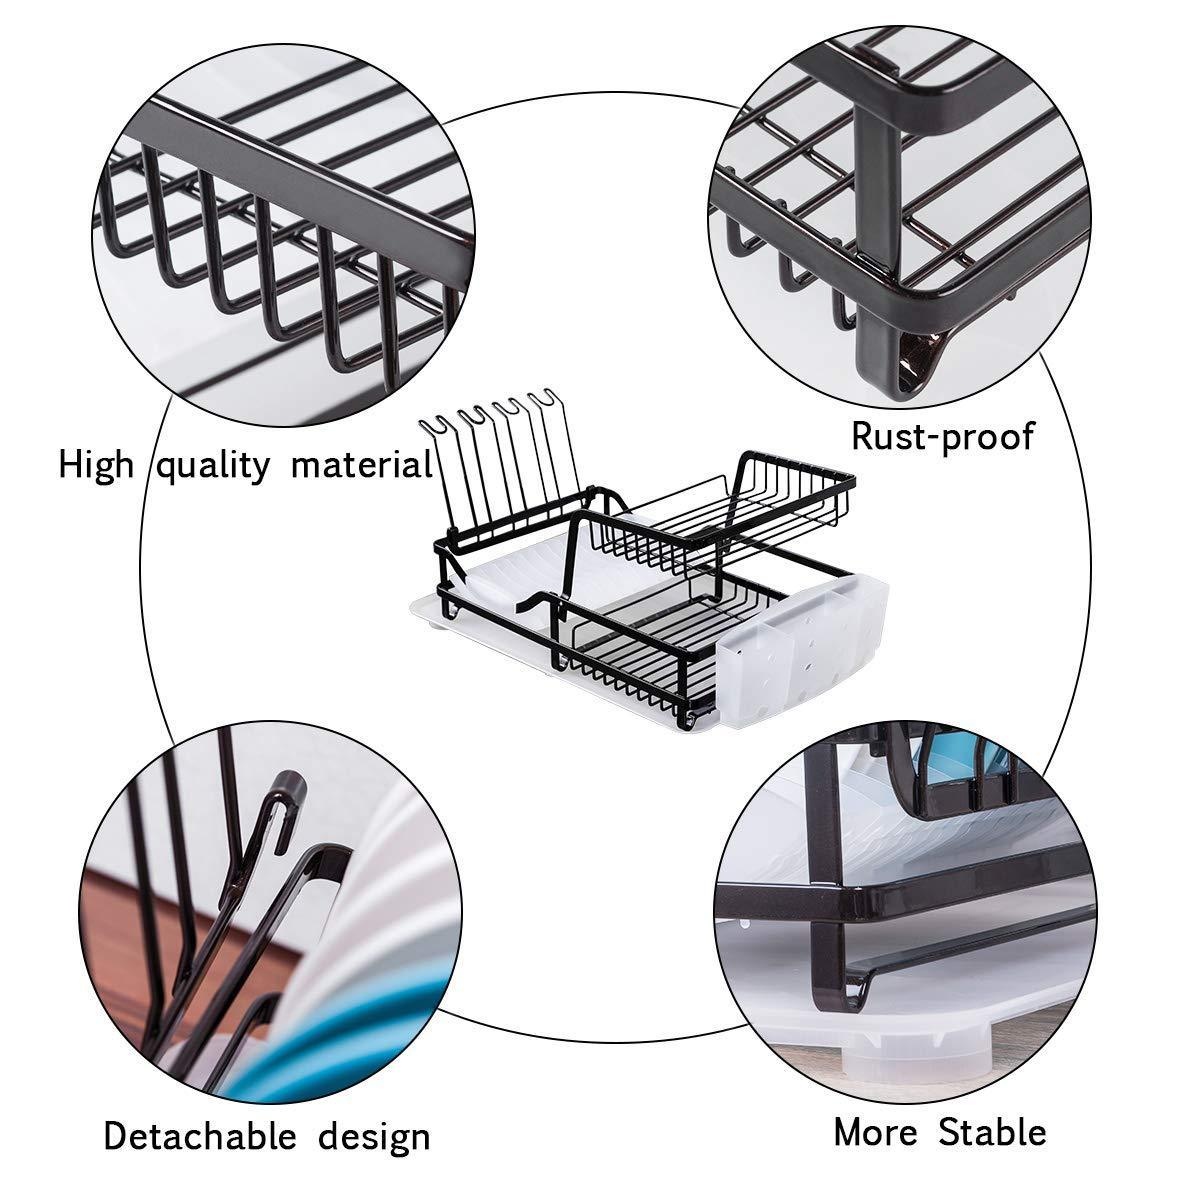 Products 2 tier dish rack dish drying rack with utensil holder and drain board wine glass holder easy storage rustproof kitchen counter dish drainer rack organizer iron